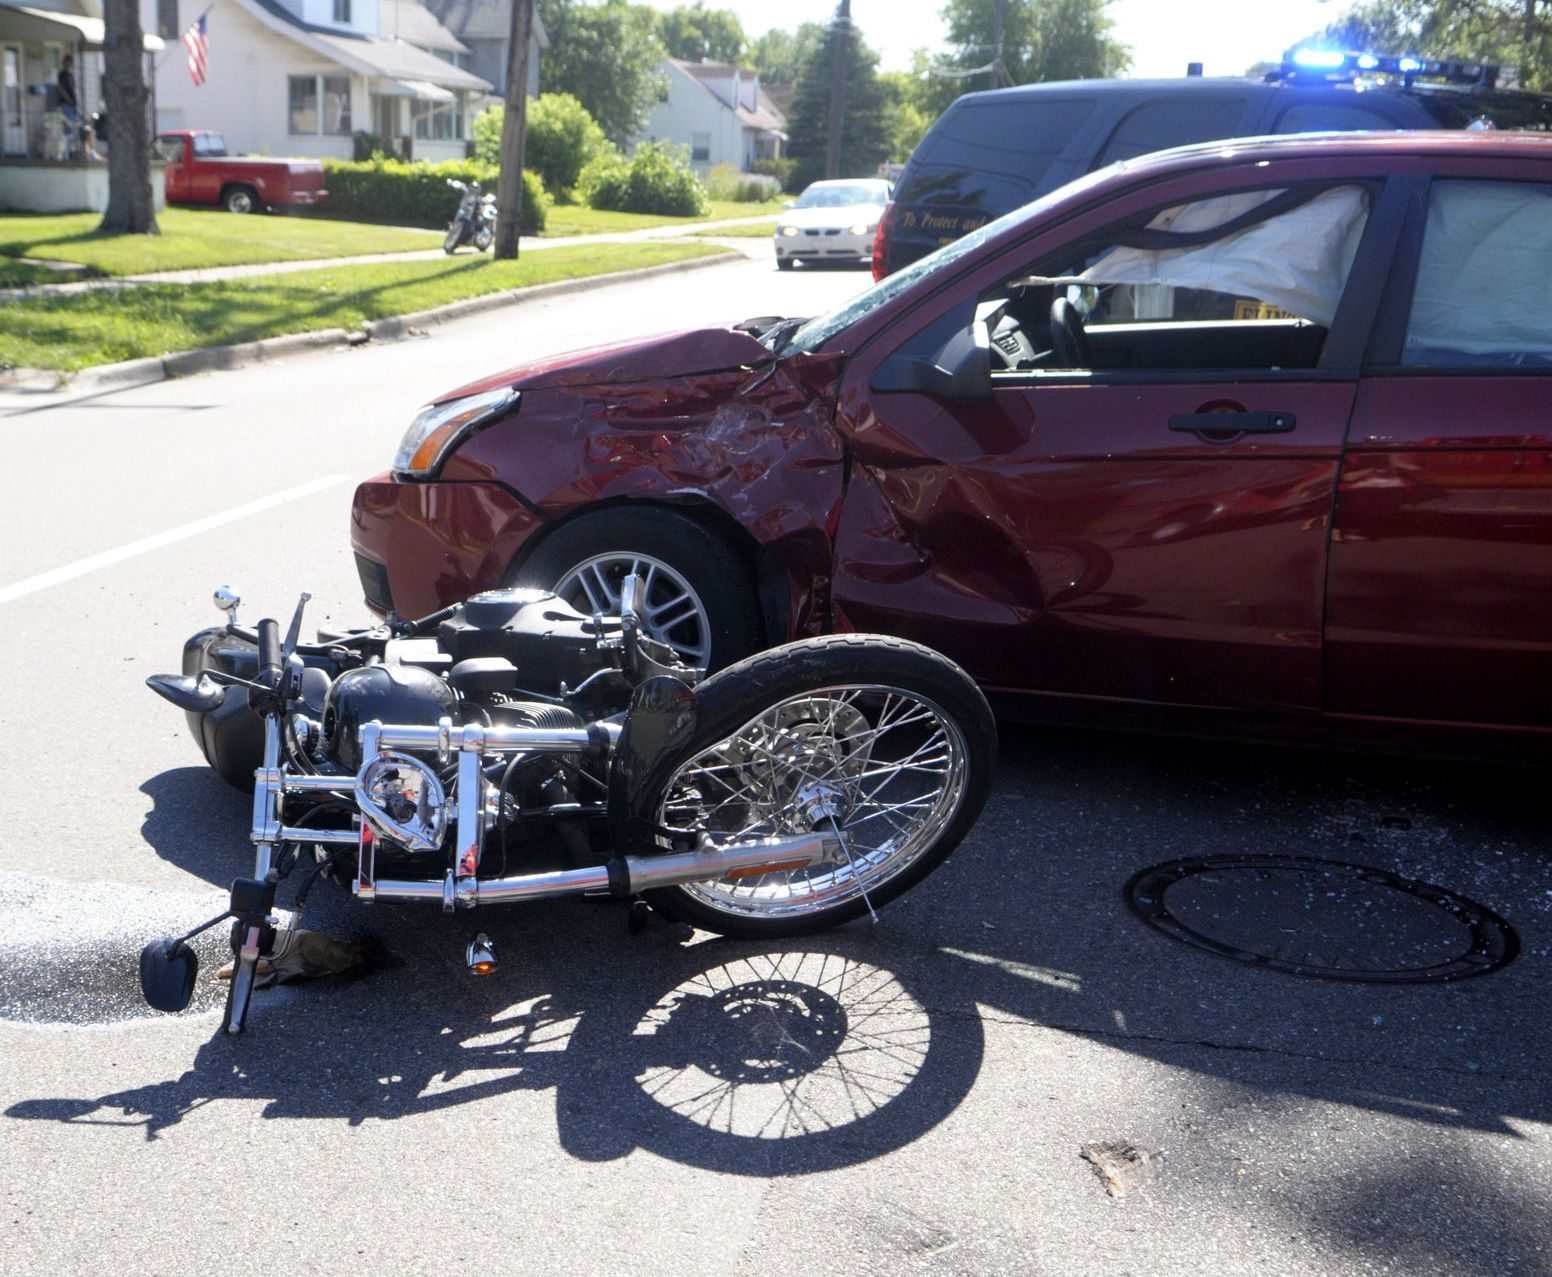 Need your motorcycle insurance? Buy or renew your